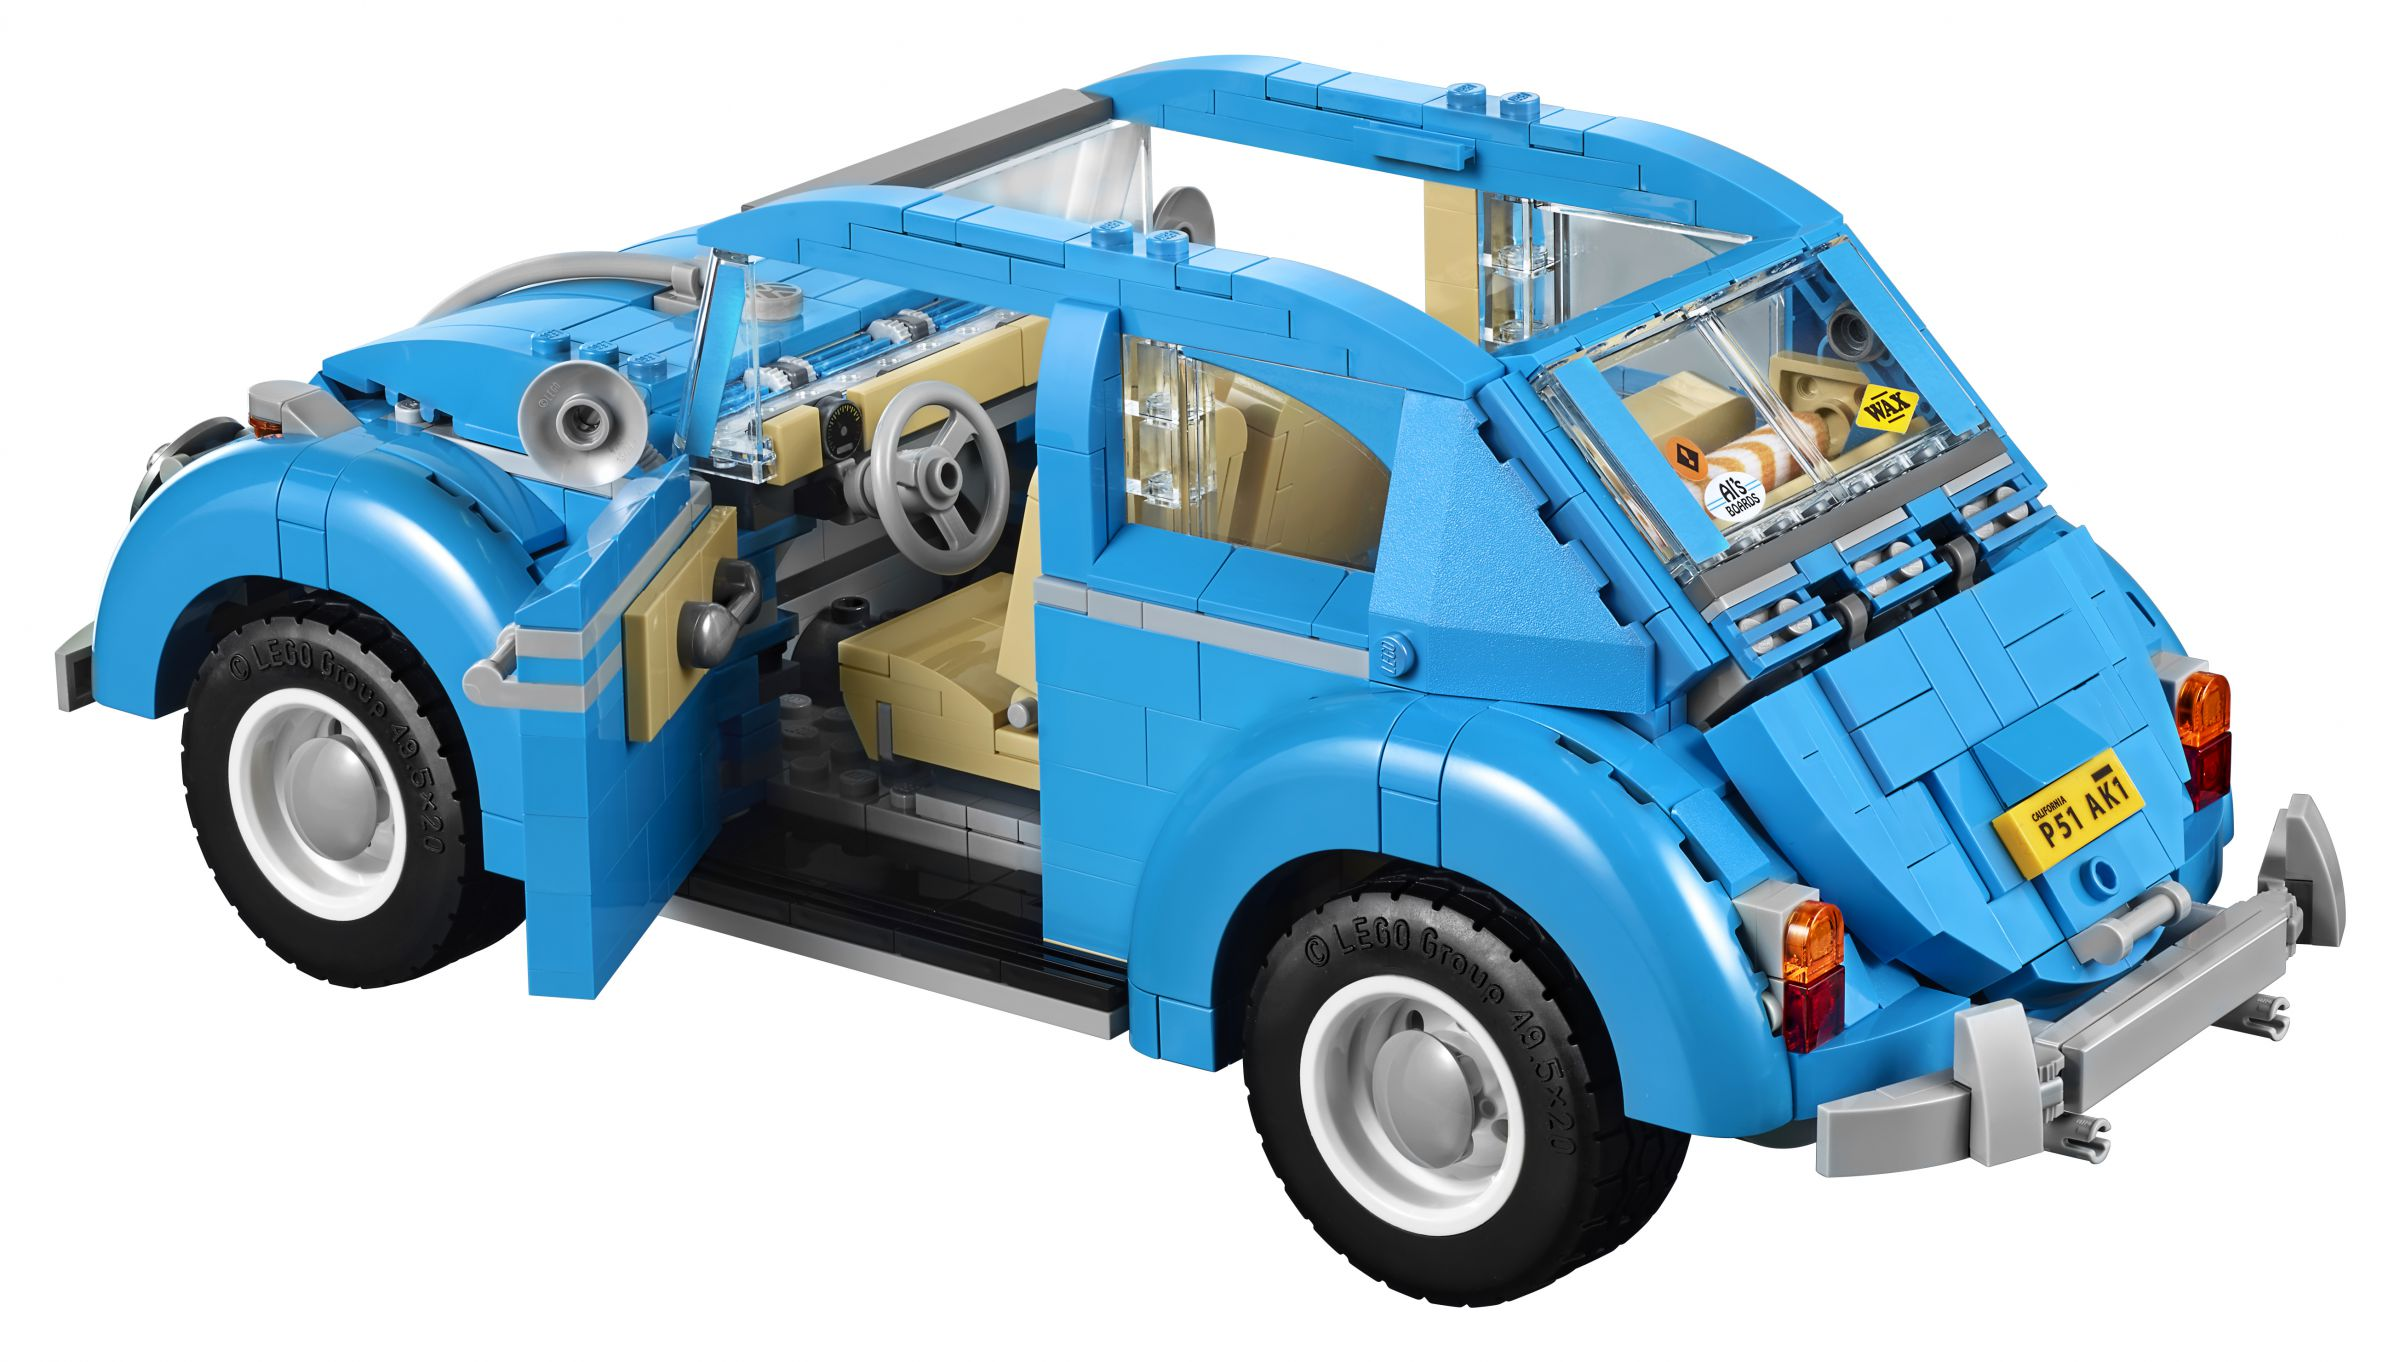 LEGO Advanced Models 10252 VW Käfer LEGO_10252_Volkswagen_Beetle_07.jpg